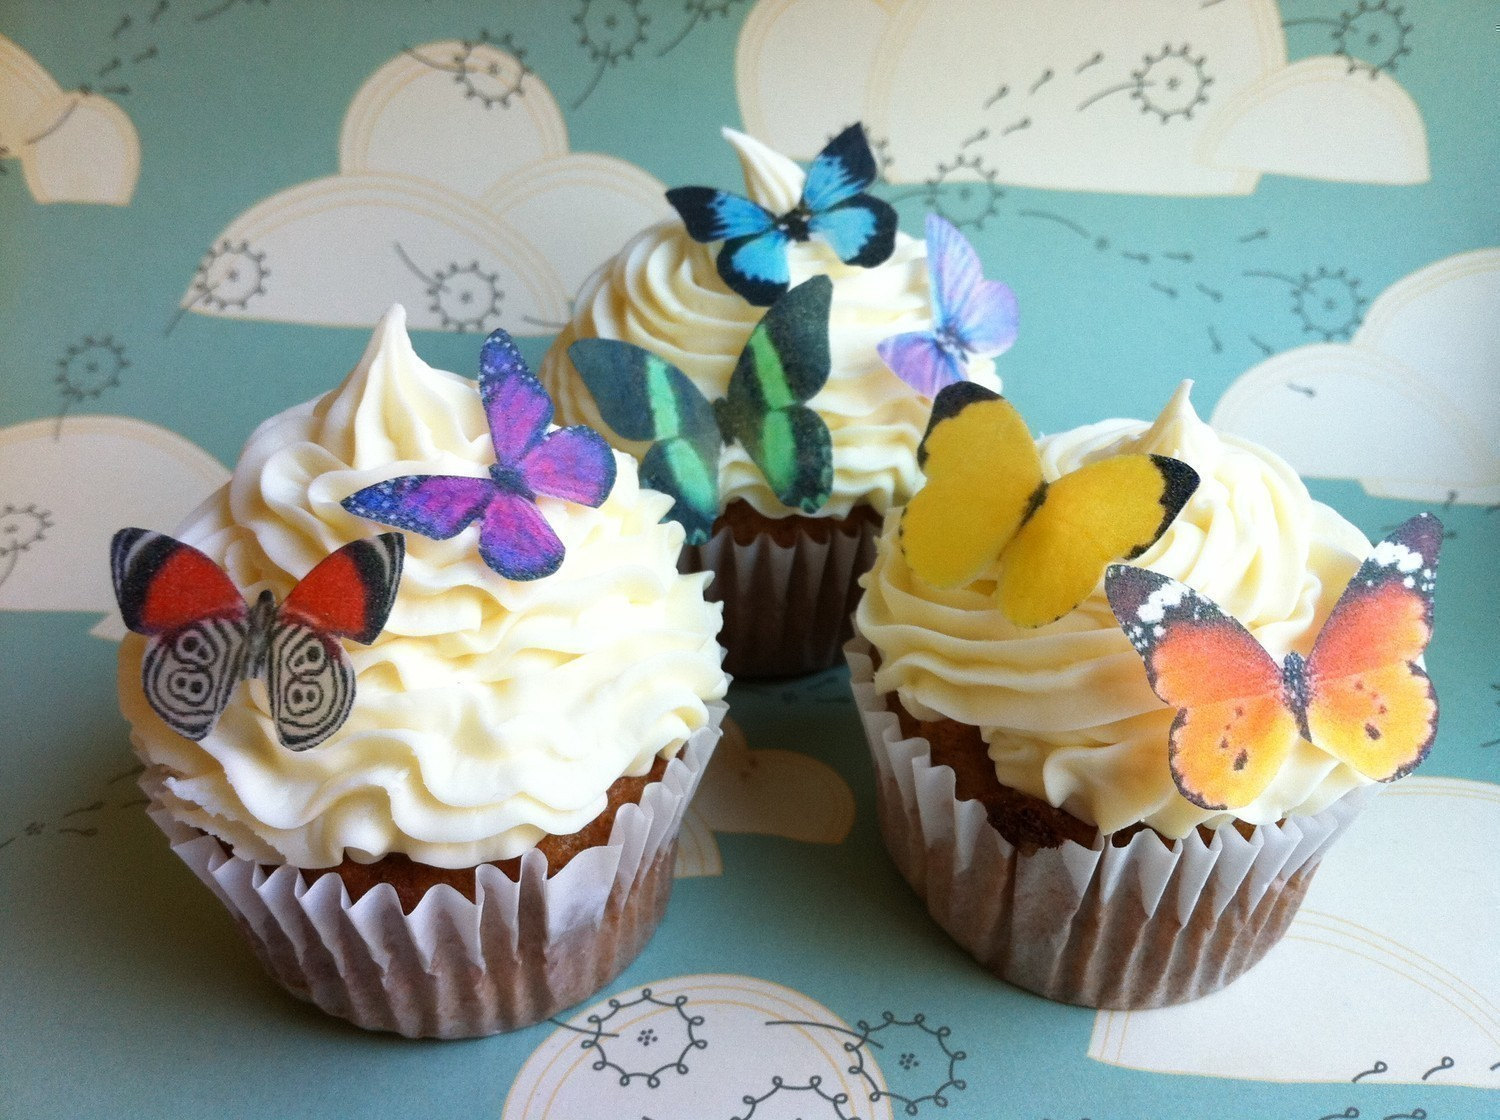 Wedding Cake Topper EDIBLE Butterflies The Original - 24 ...